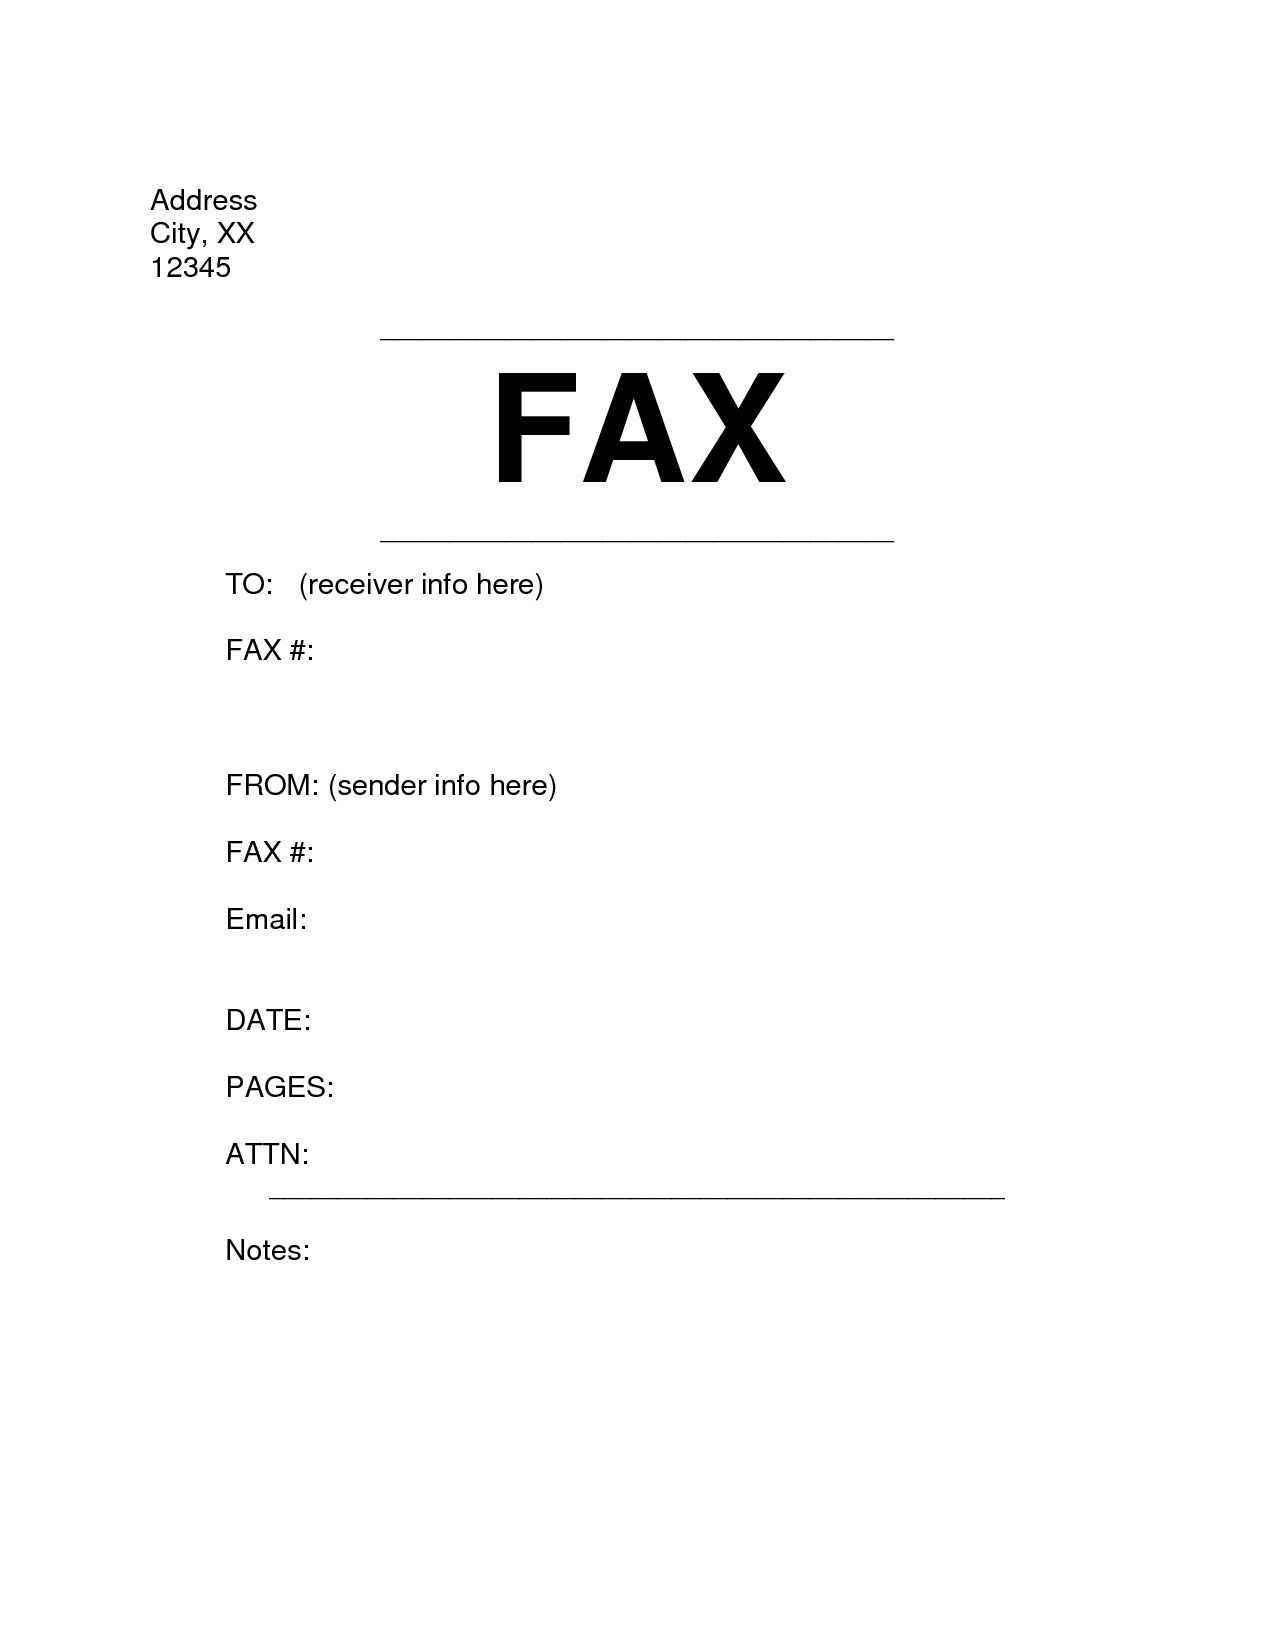 Fax Cover Letter Example Resume  Fax Cover Letter Example